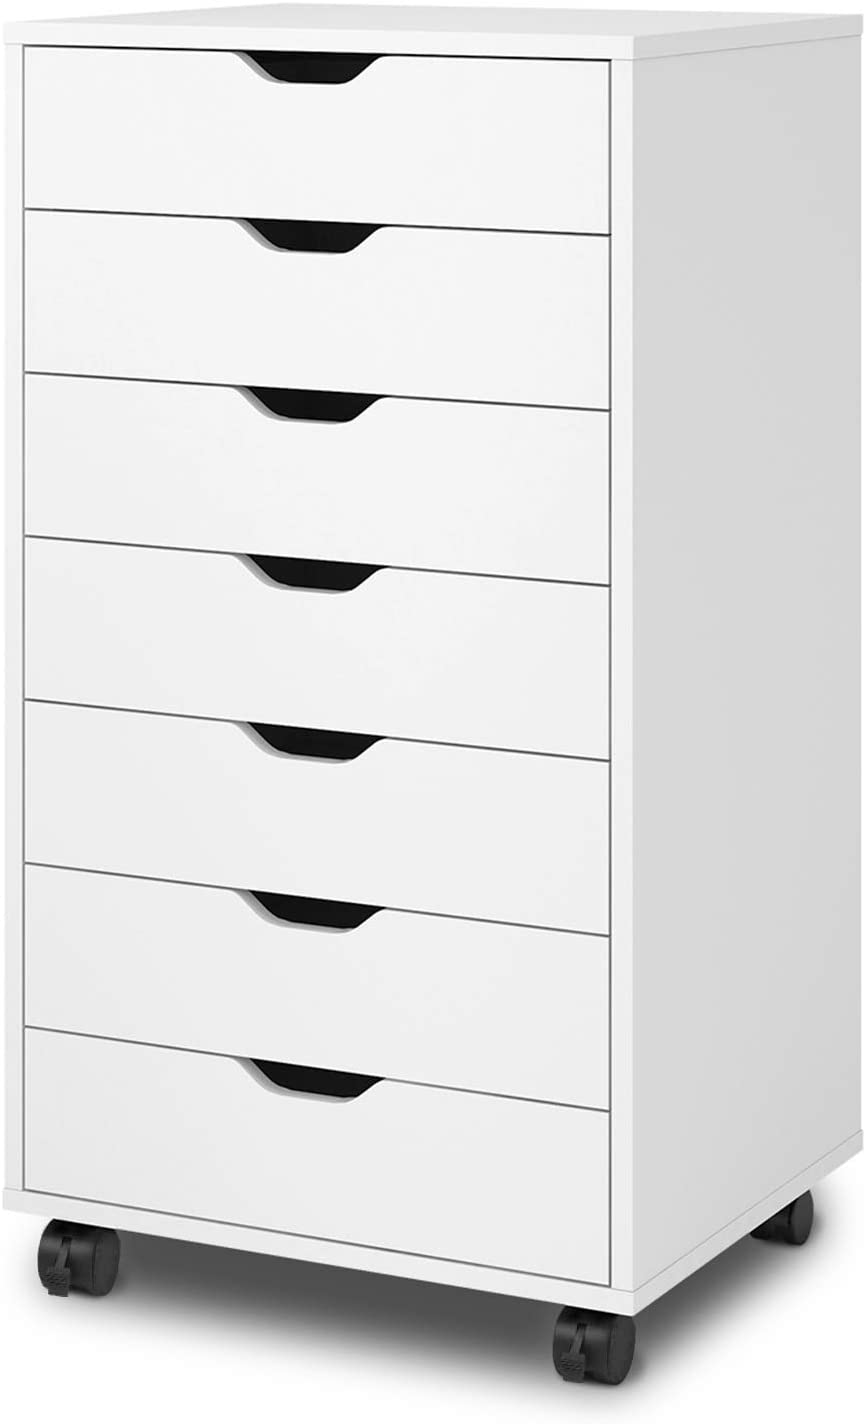 DEVAISE Mobile Narrow Chest of 7 Drawers, Wood Dresser Storage Cabinet for Home & Office & Bedroom & Hallway, White